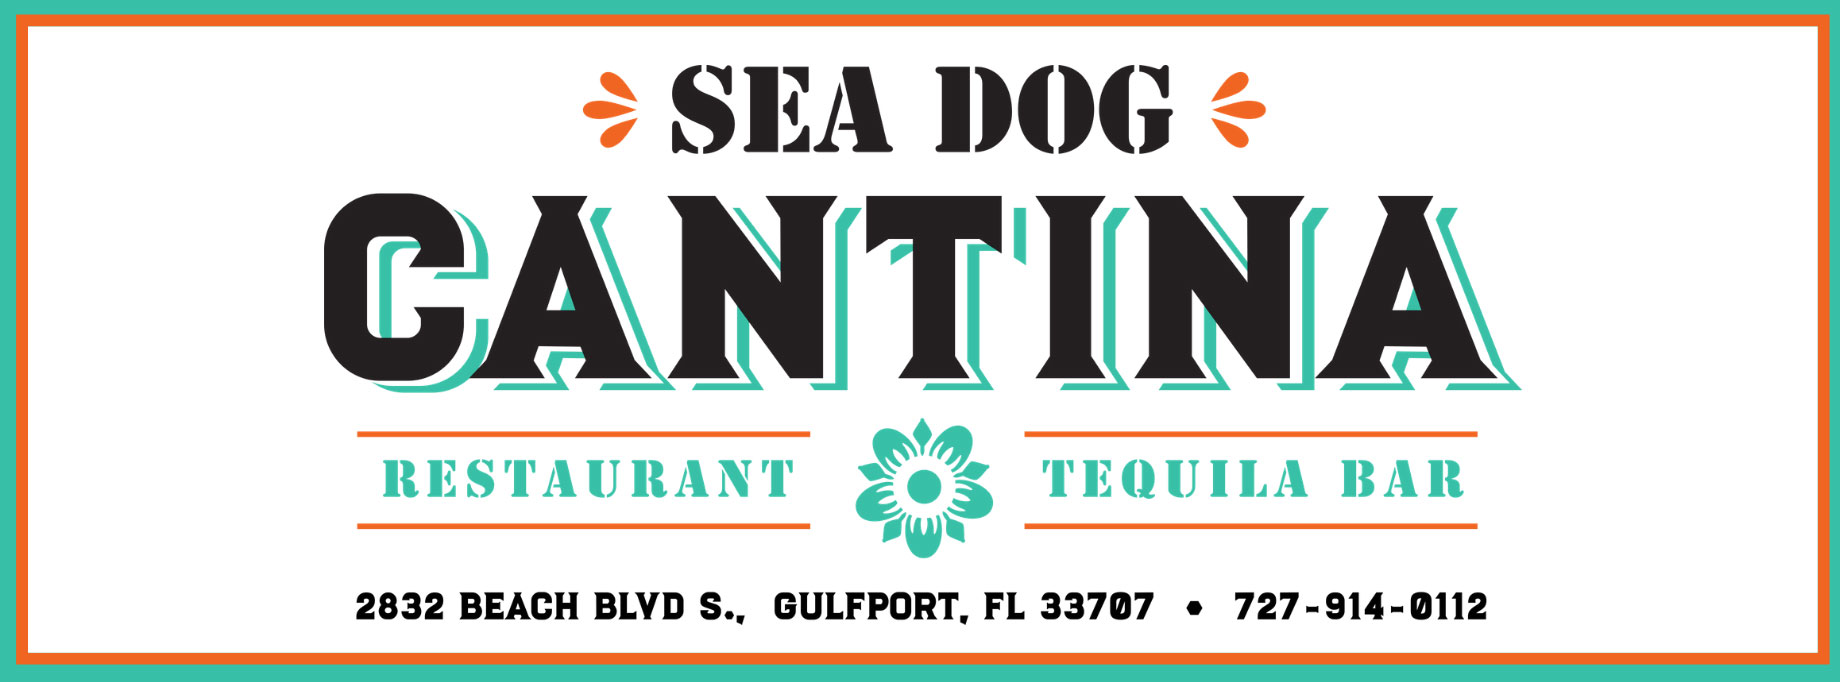 Sea-Dog-Cantina-Logo